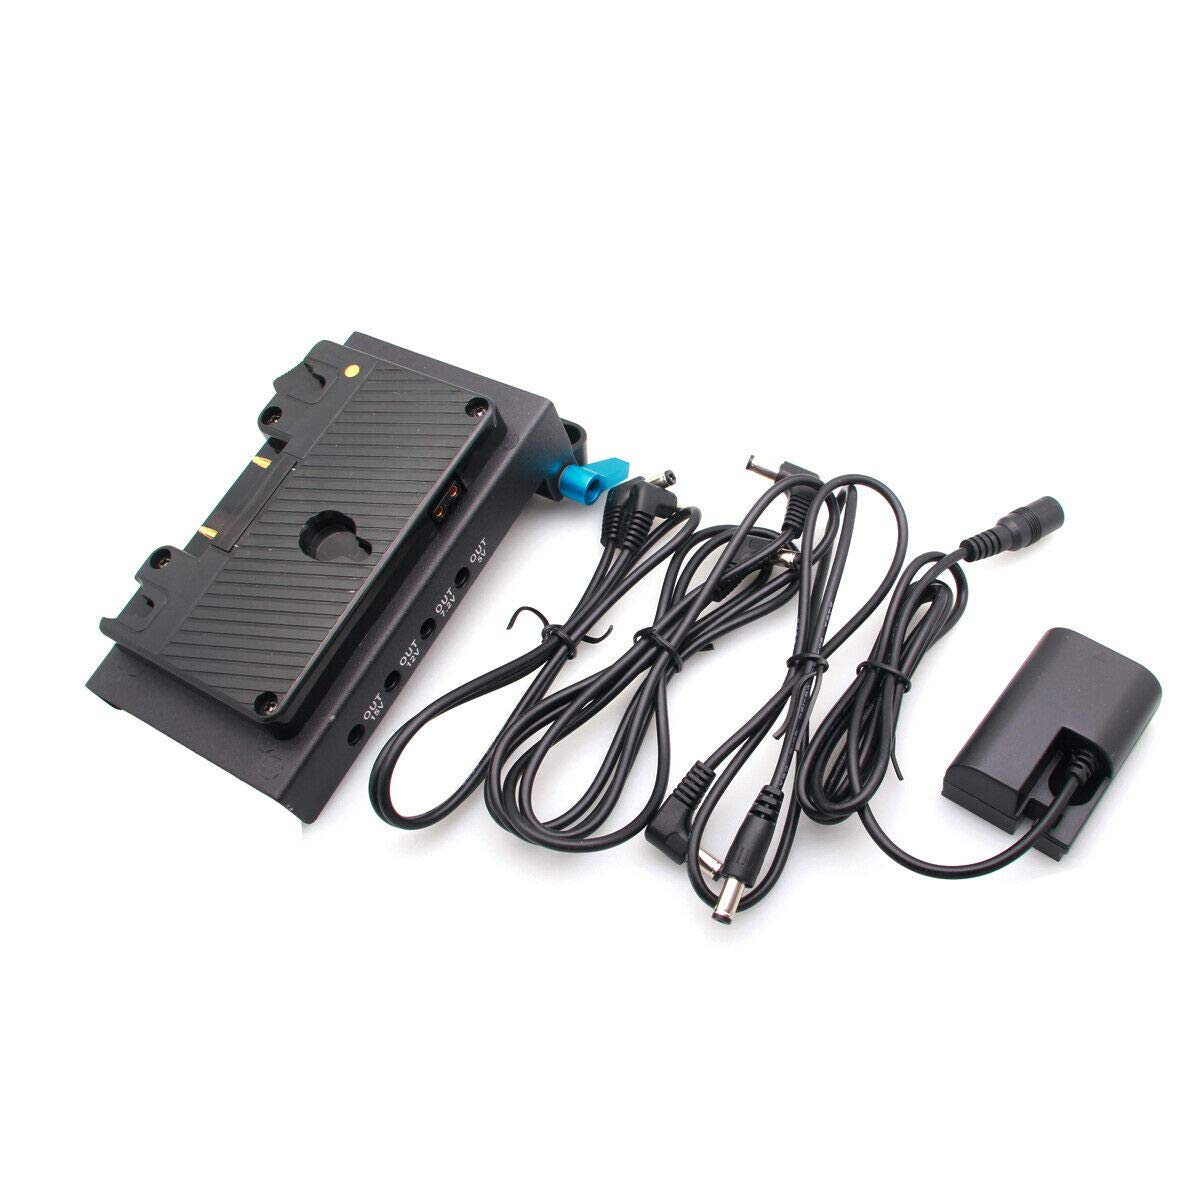 Runshuangyu Anton Bauer Gold Mount Power Supply Station with LP-E6 Dummy Battery Pack & 15mm Rod Clamp for Canon EOS 5D Mark II III IV, 7D, 6D, 60D,70D DSLR Camera by Run Shuangyu